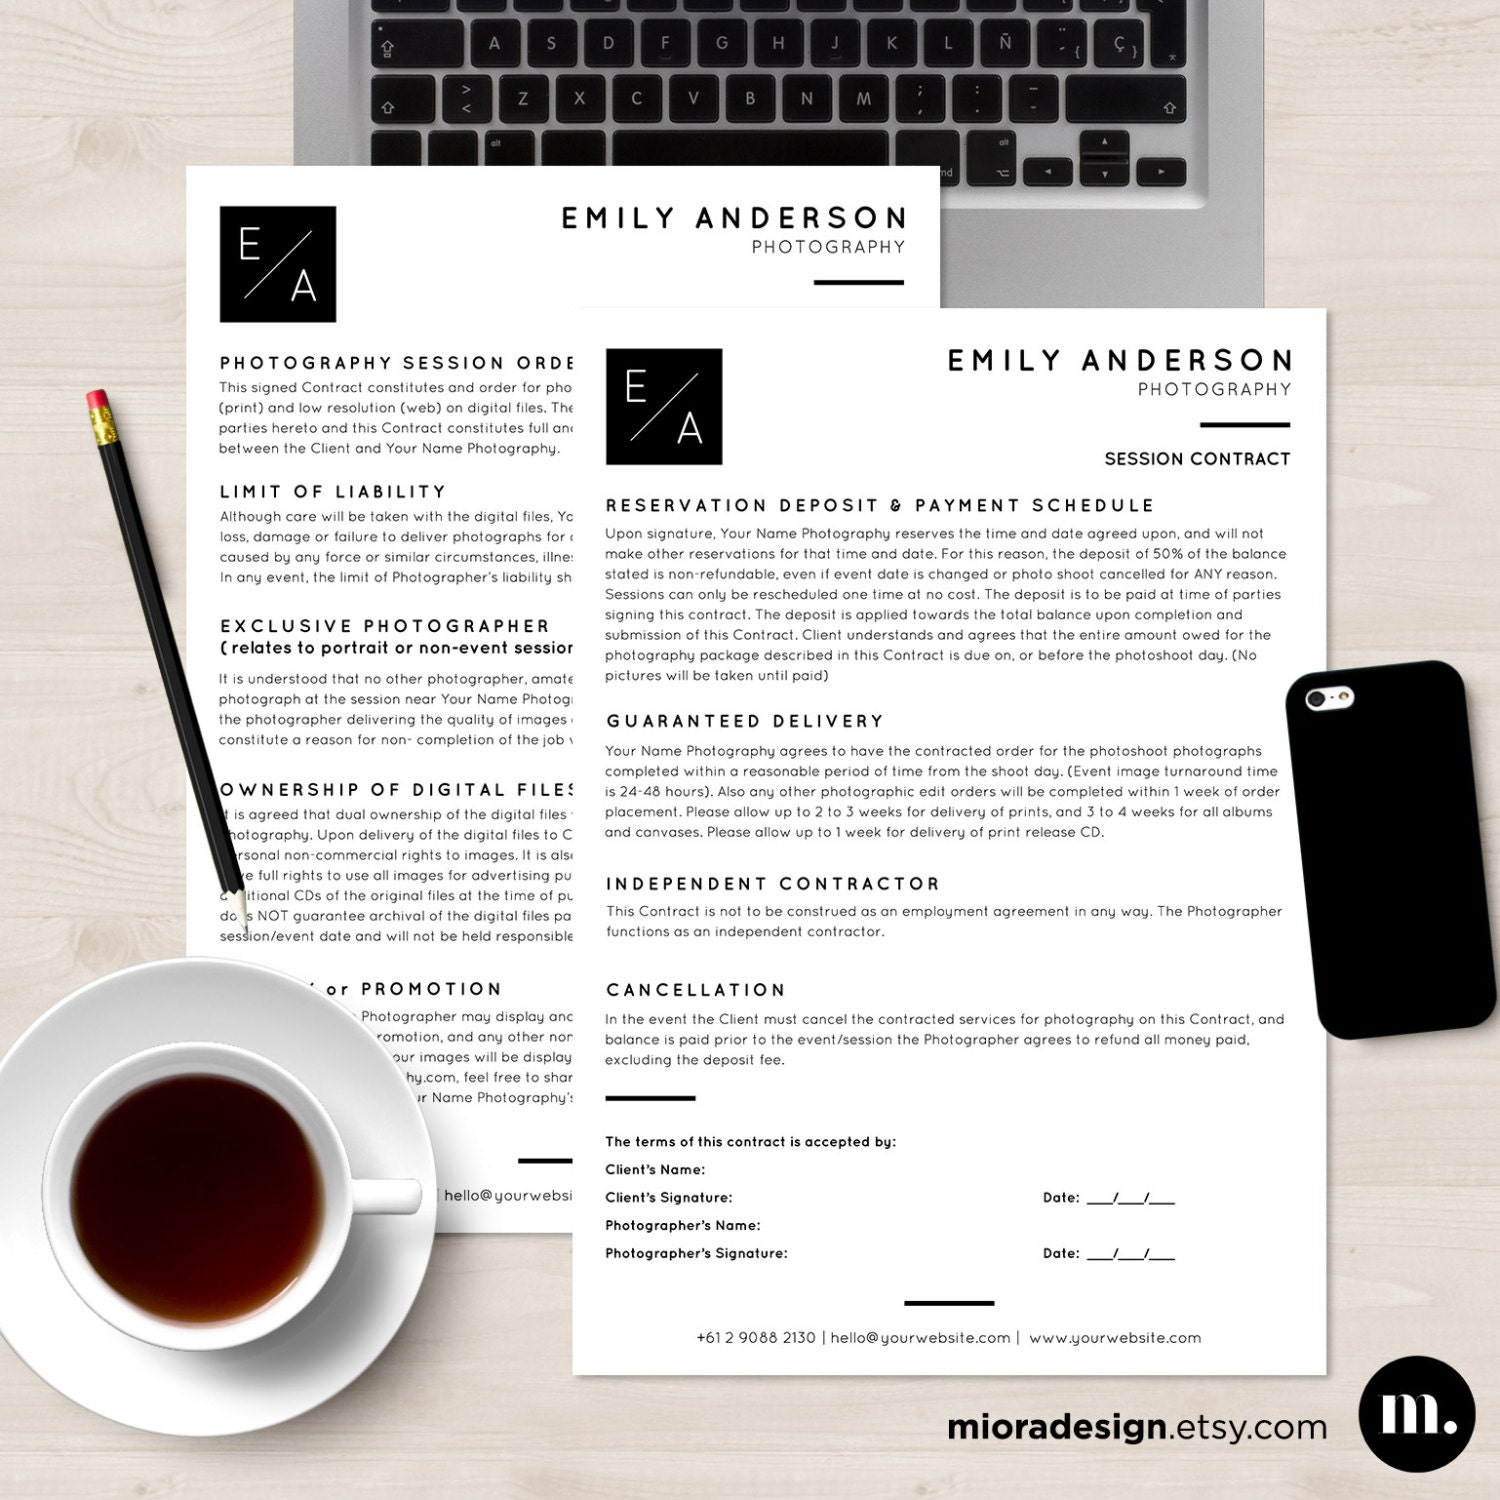 session contract form msword and photoshop template for